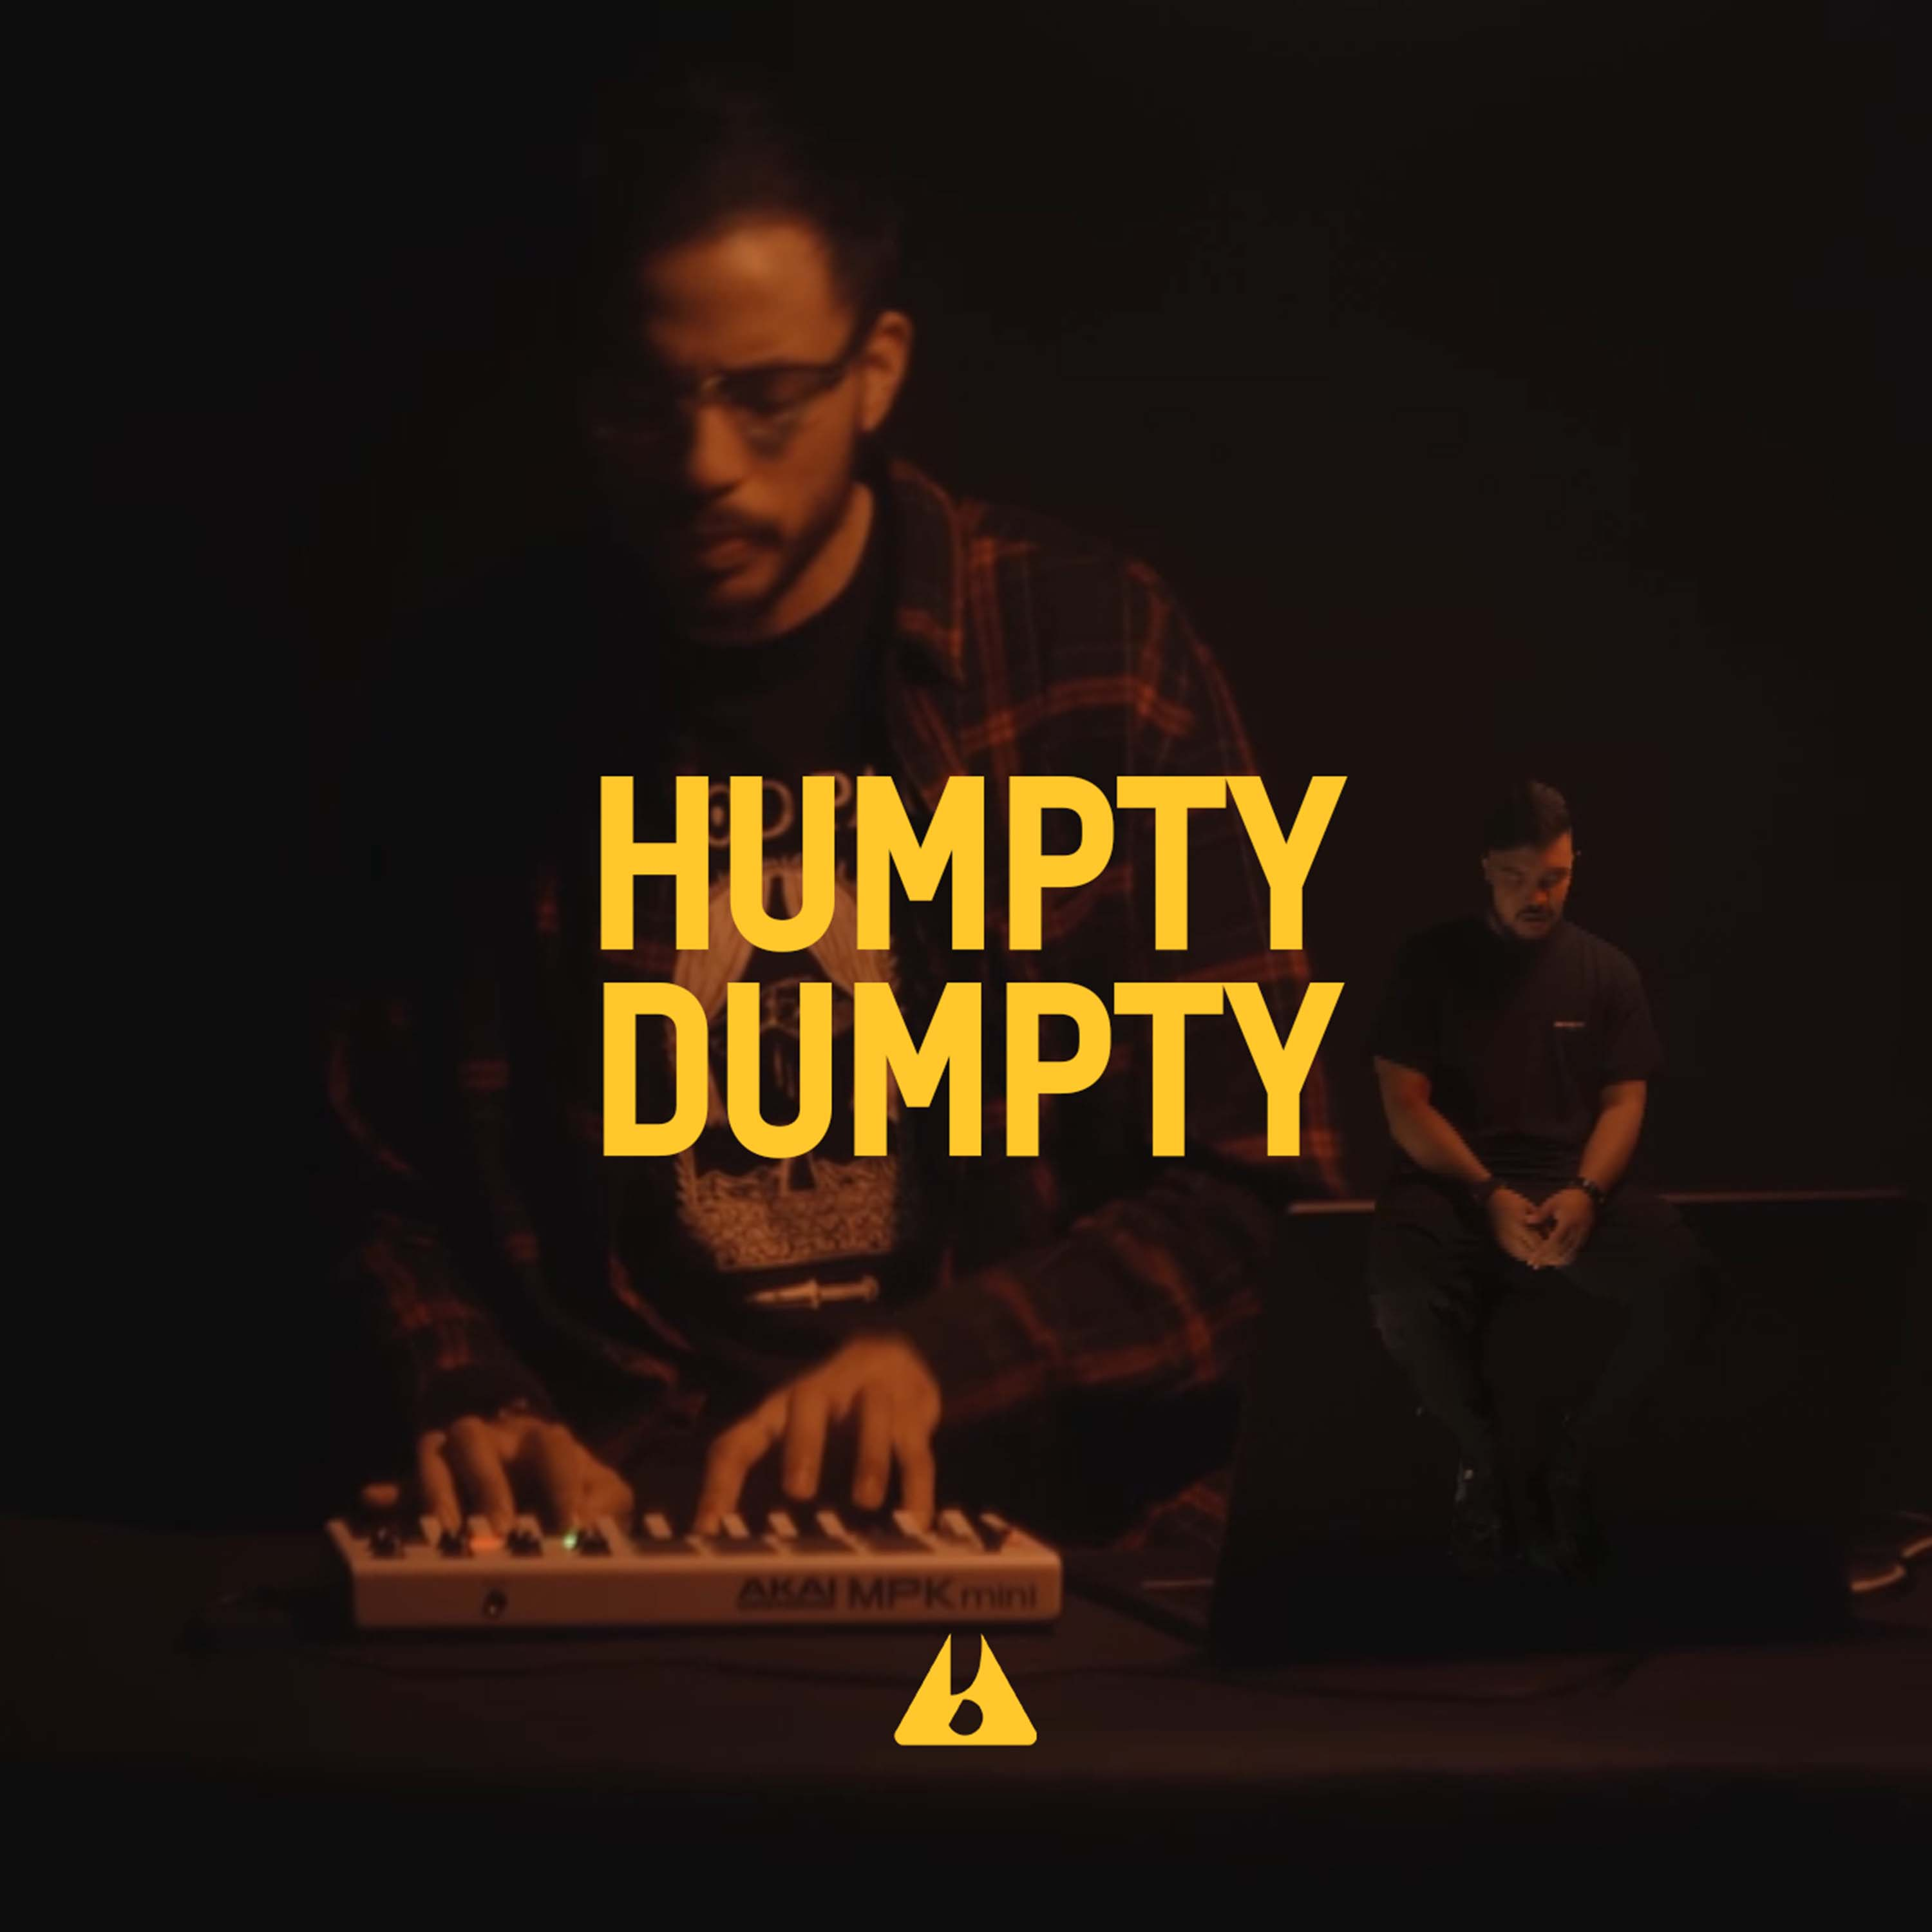 Humpty dumpty album art 3kpx